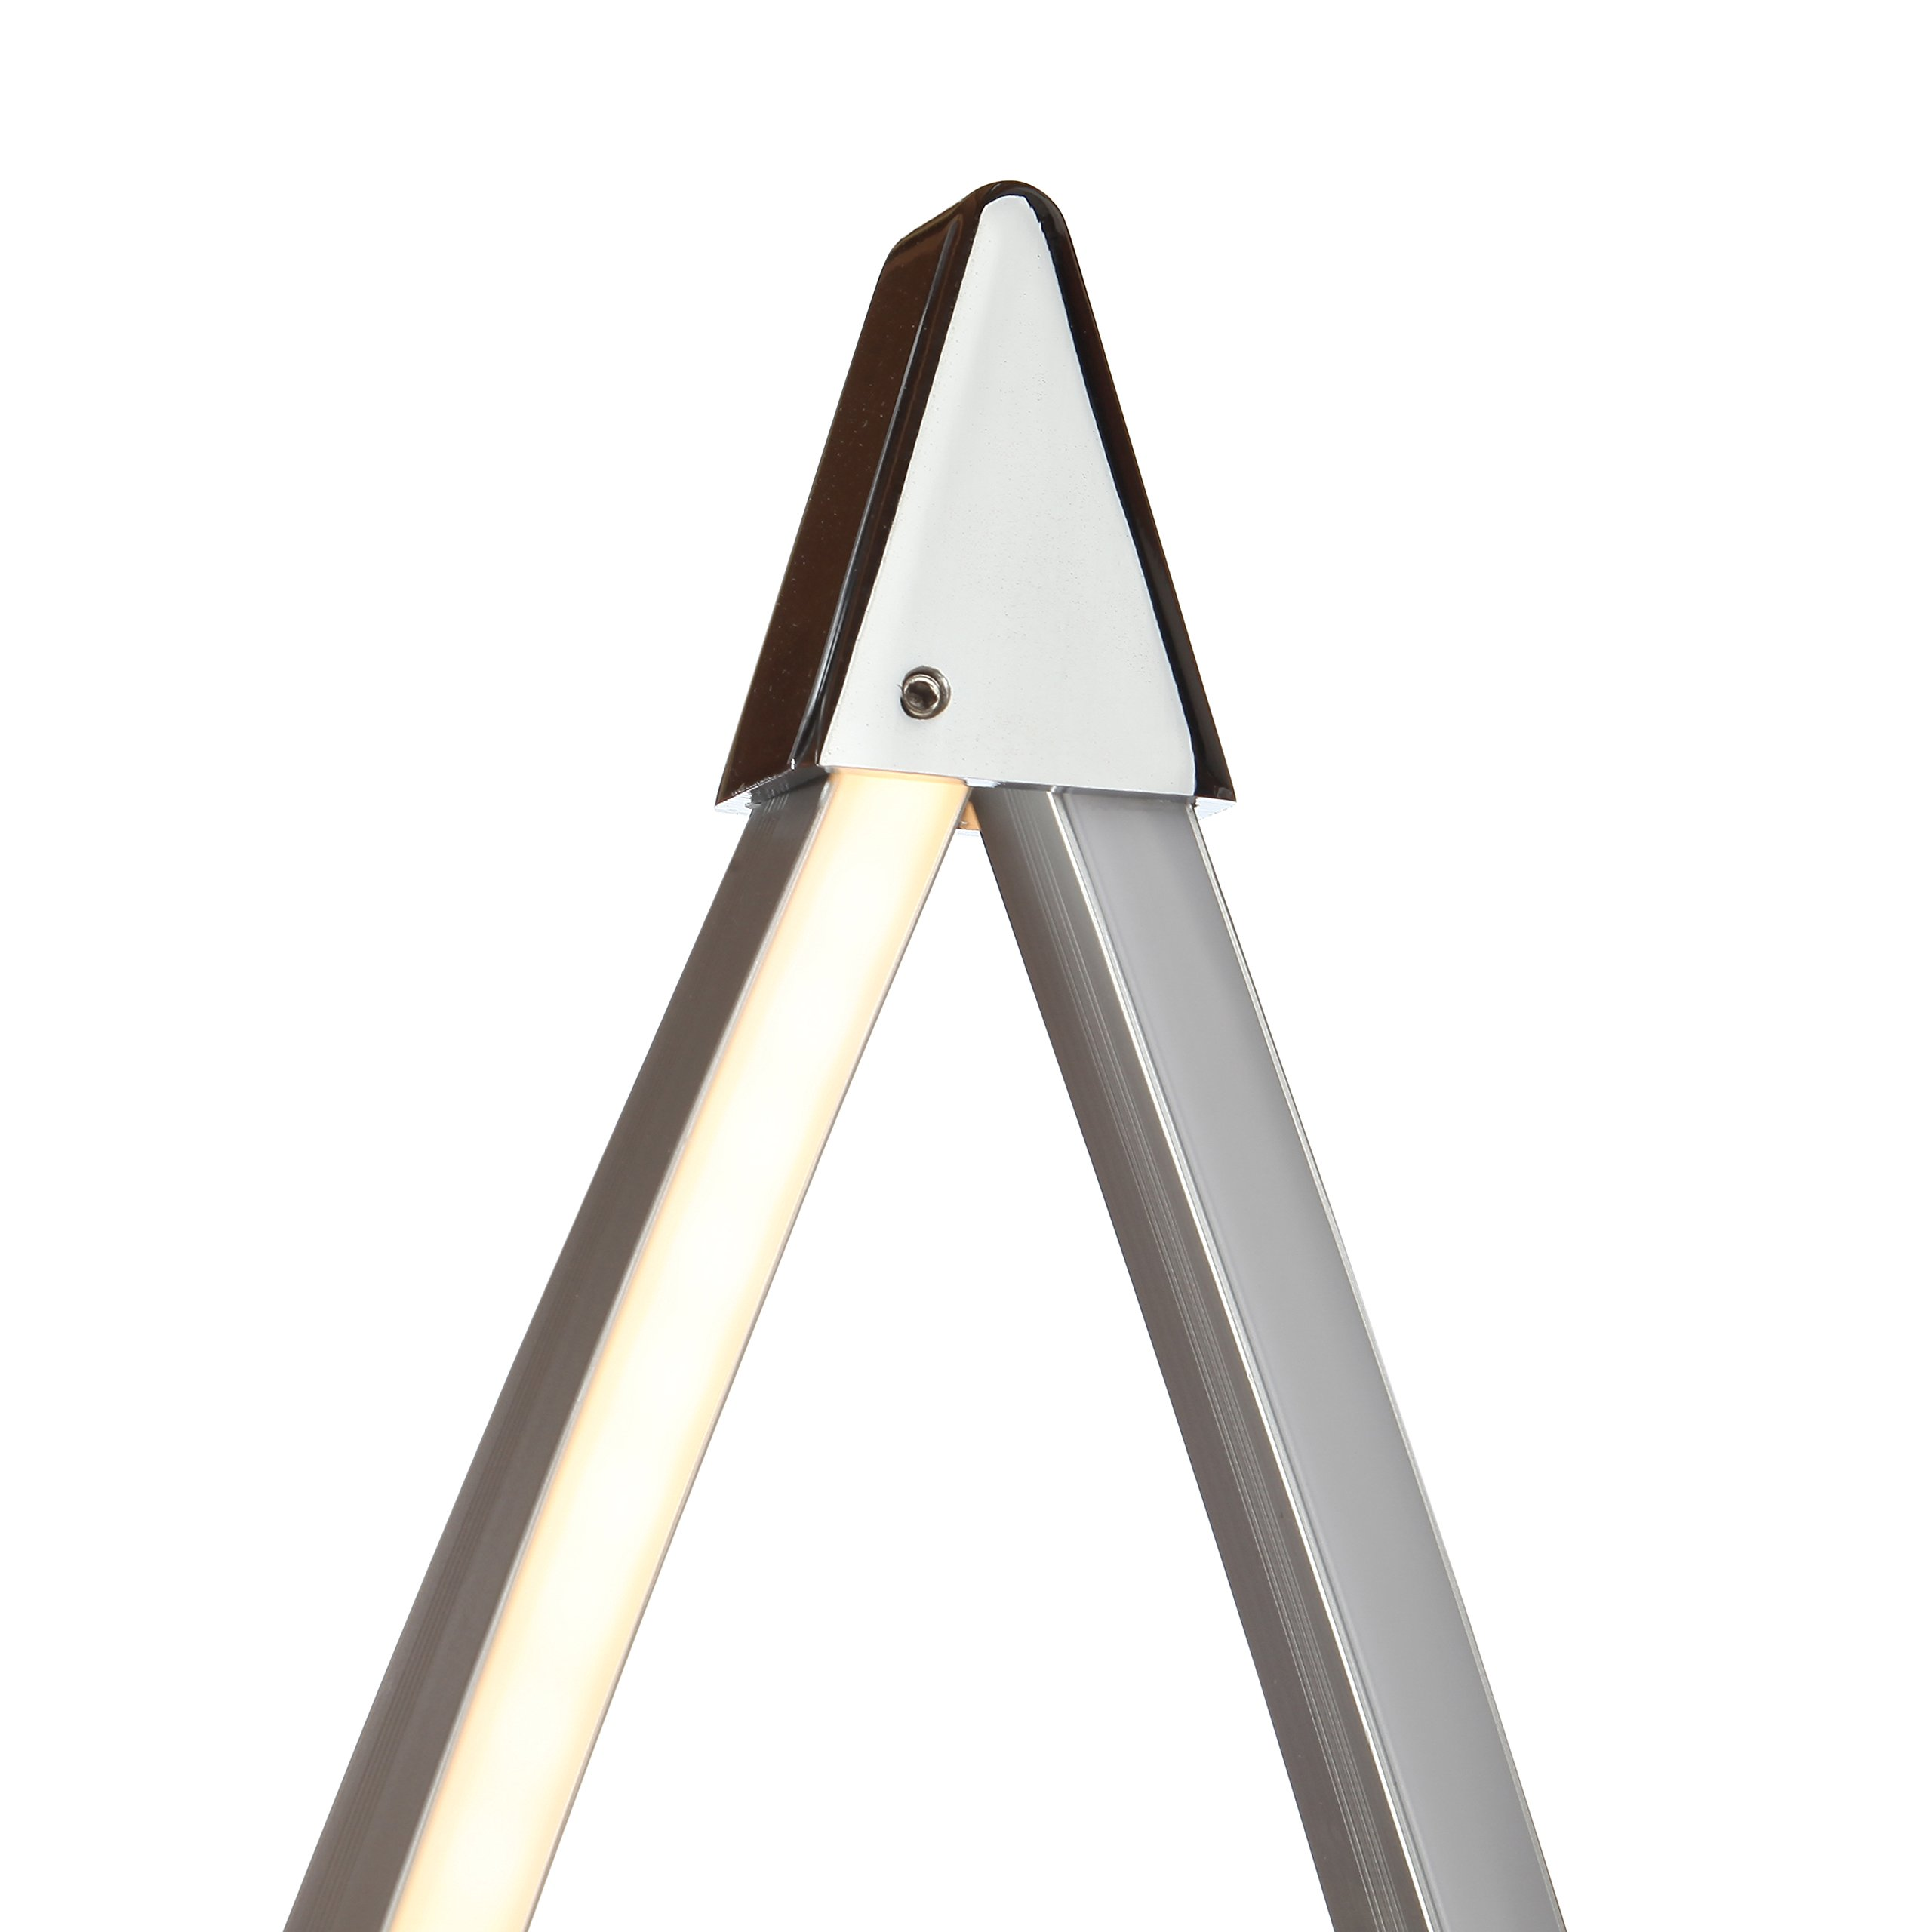 Brightech Twist - Modern LED Living Room Floor Lamp - Bright Contemporary Standing Light - Built in Dimmer Switch with 3 Brightness Settings - Cool, Futuristic Lighting - Silver by Brightech (Image #2)